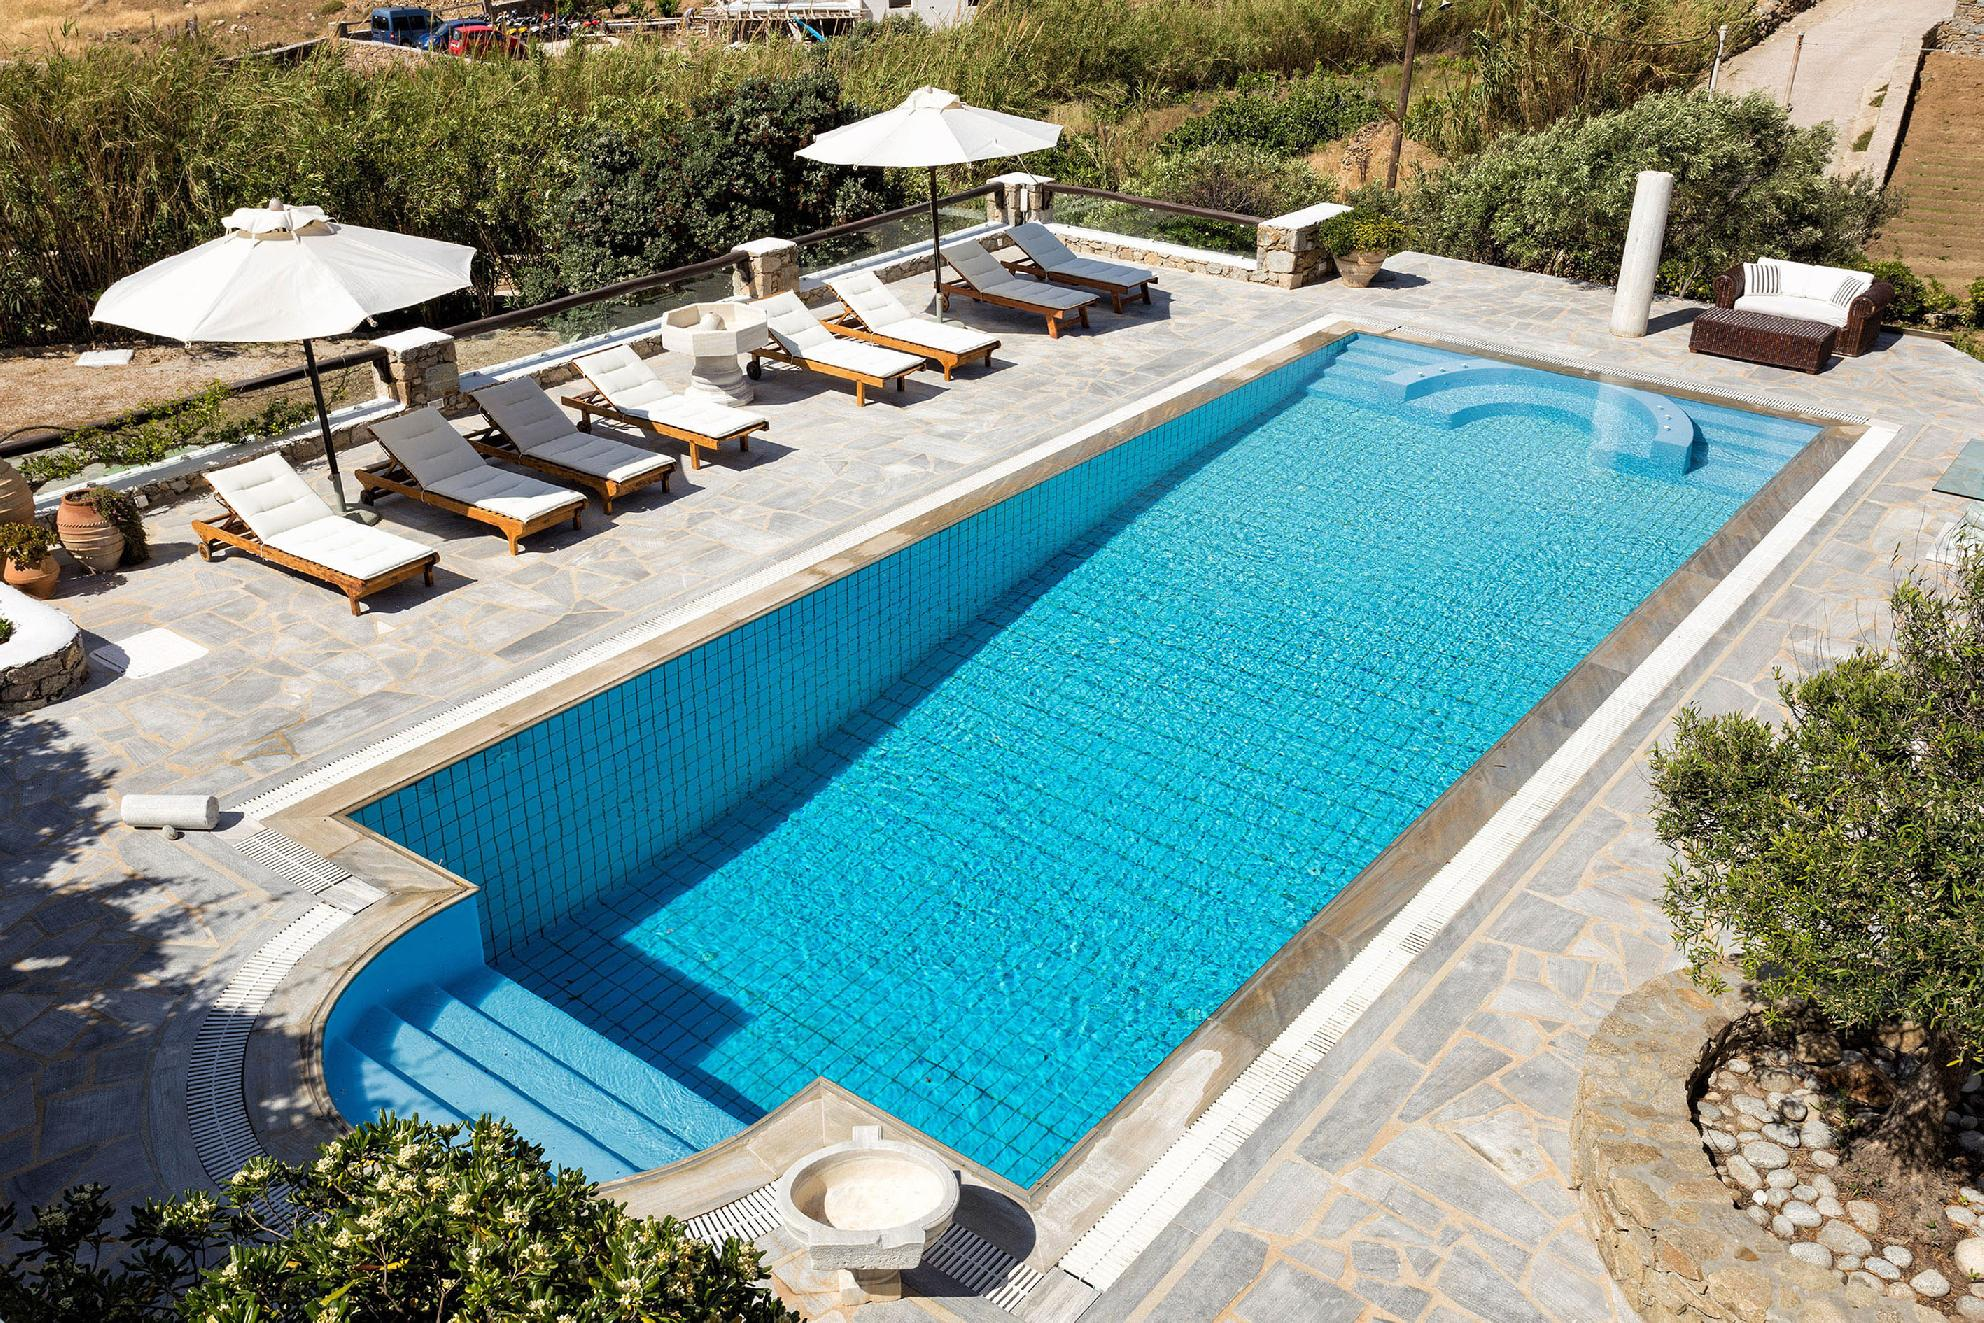 Apartment The Galaxy Mykonos villa with large pool and yoga platform photo 6005280